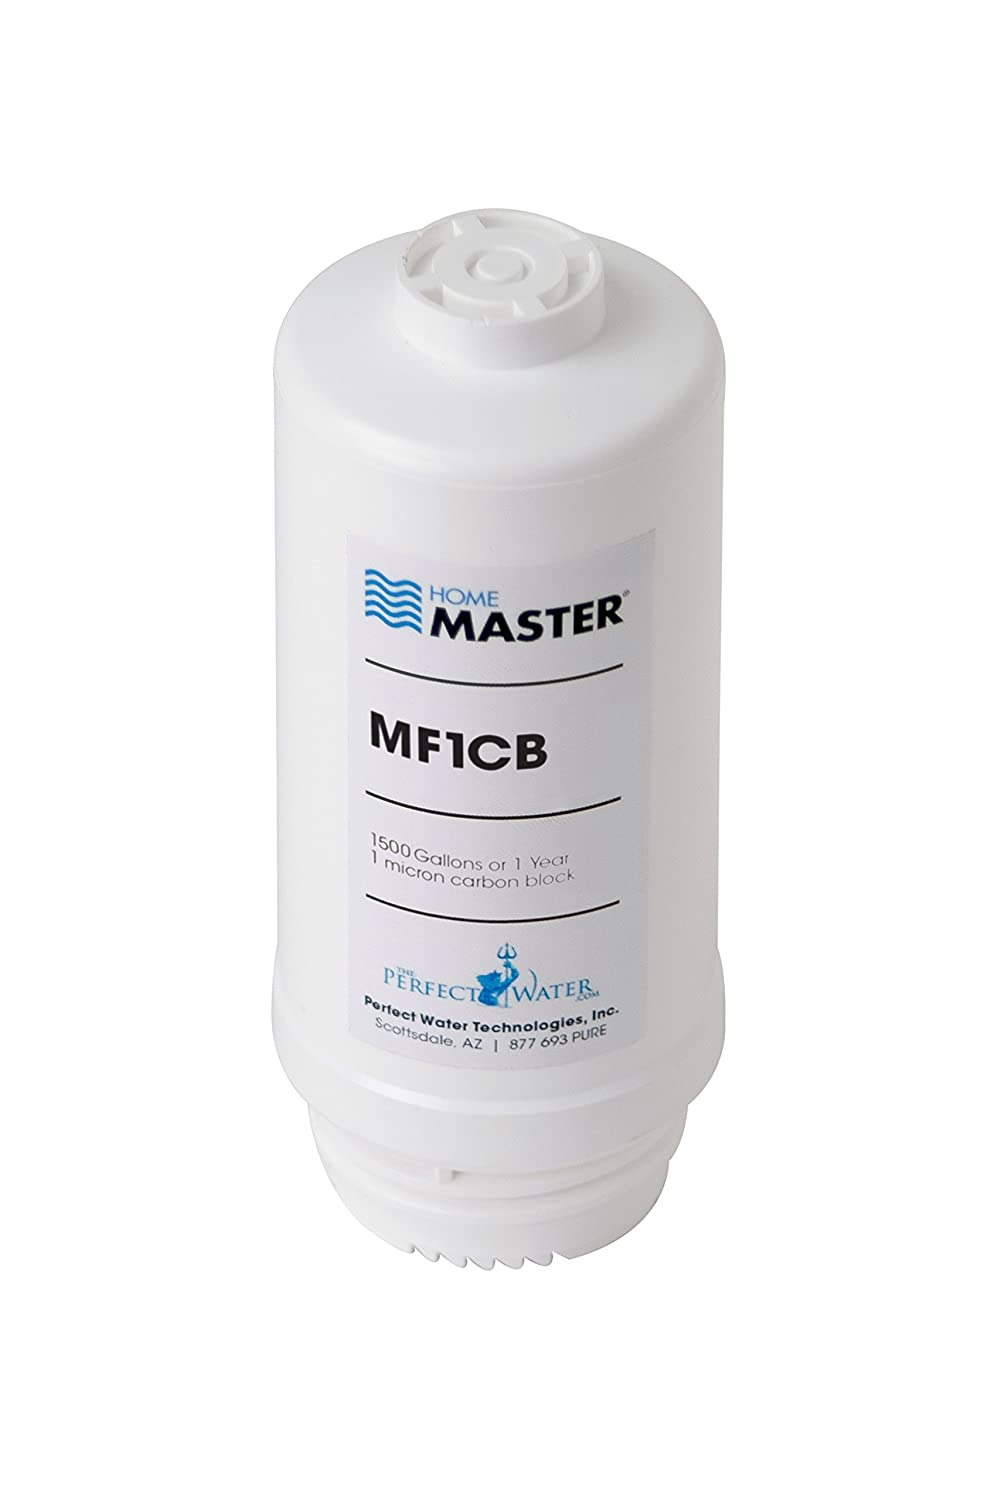 Home Master MF1CB Mini Replacement Filter, White